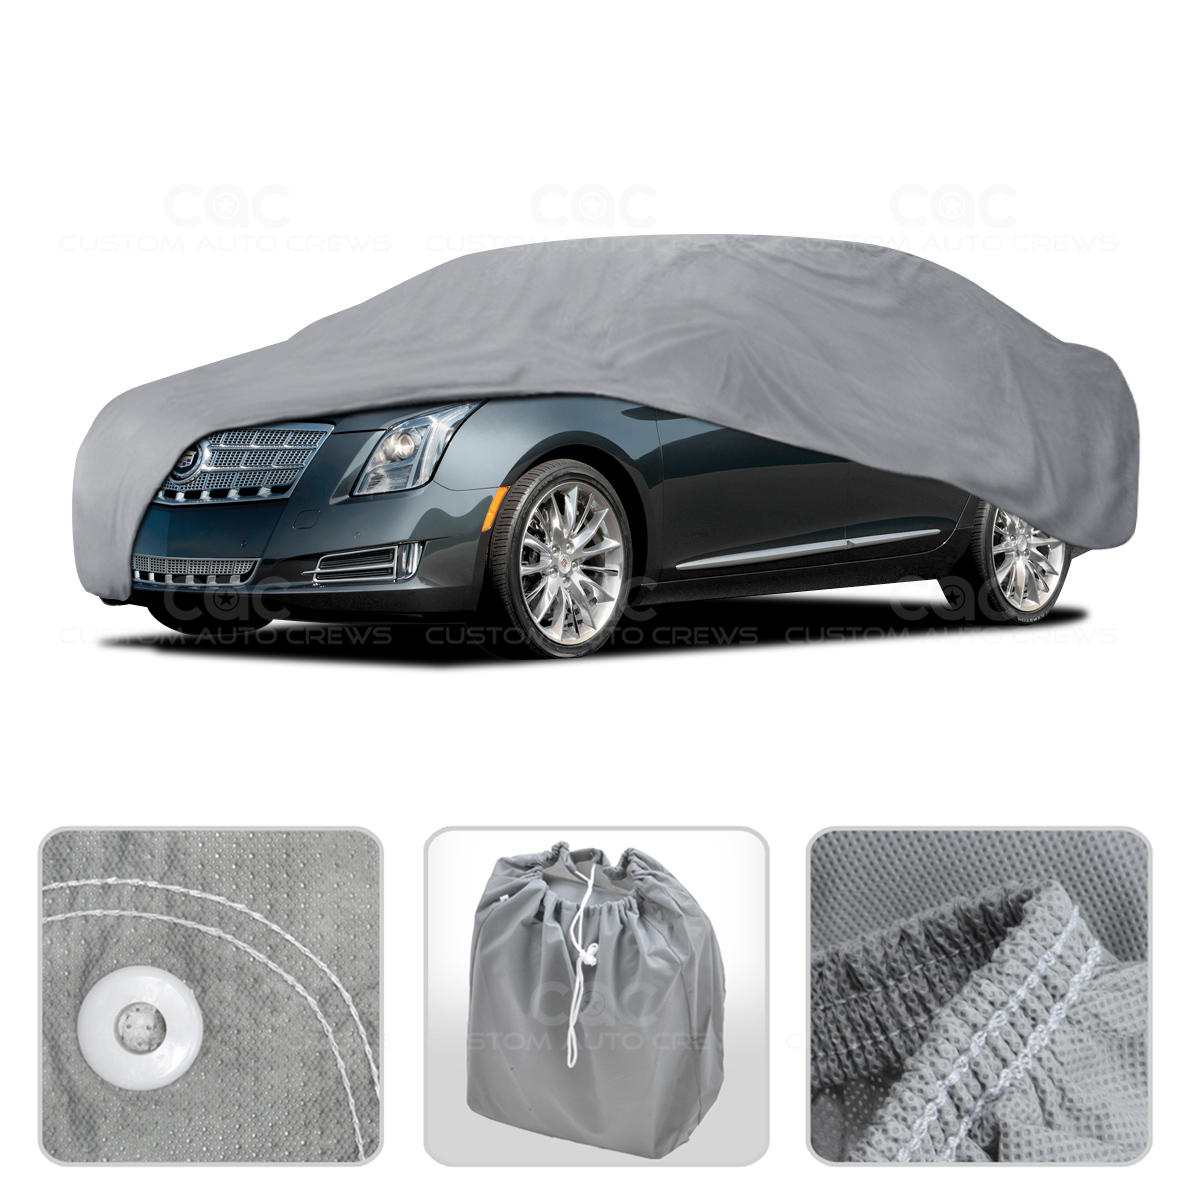 car cover for chevrolet camaro 67 89 outdoor breathable sun dust protection ebay. Black Bedroom Furniture Sets. Home Design Ideas